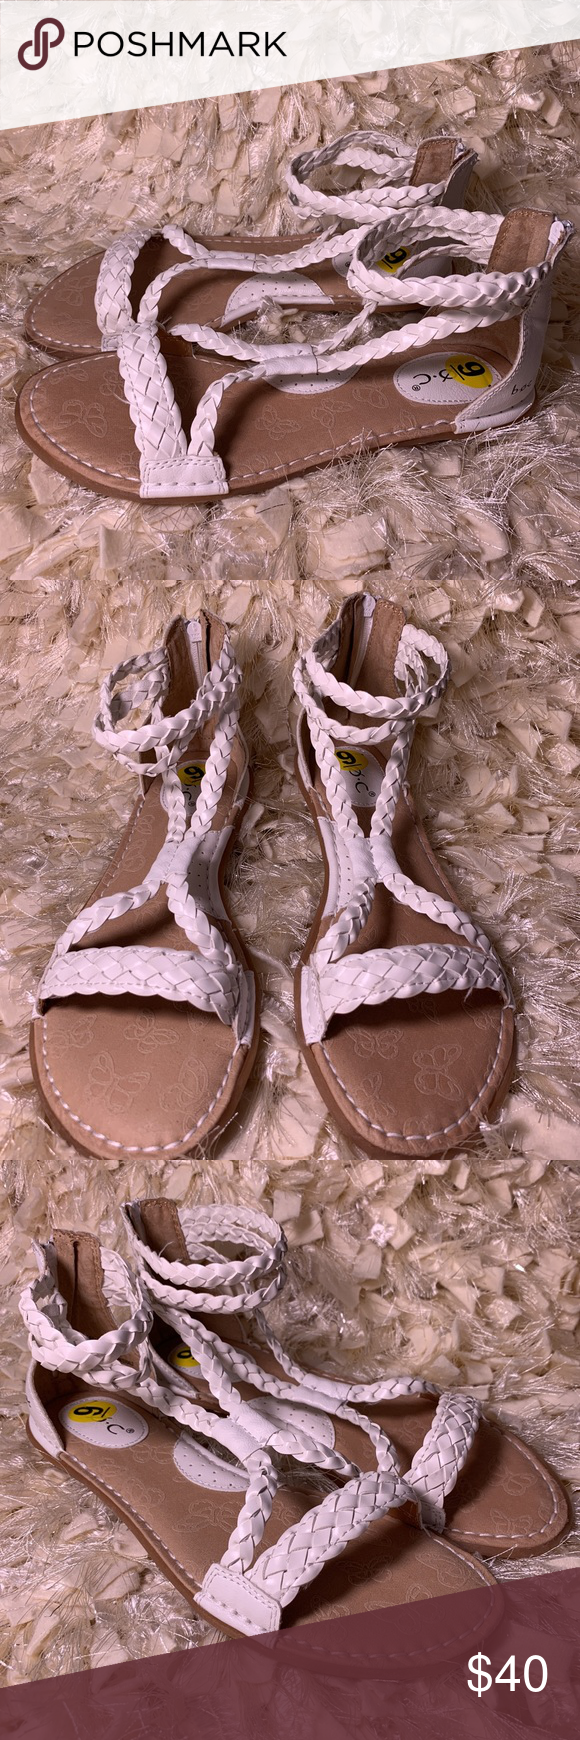 a5bb7b89567 BOC white strappy gladiator sandals size 9 BOC new without box size 9 white  strappy faux leather braided flat sandals gladiator boc Shoes Sandals